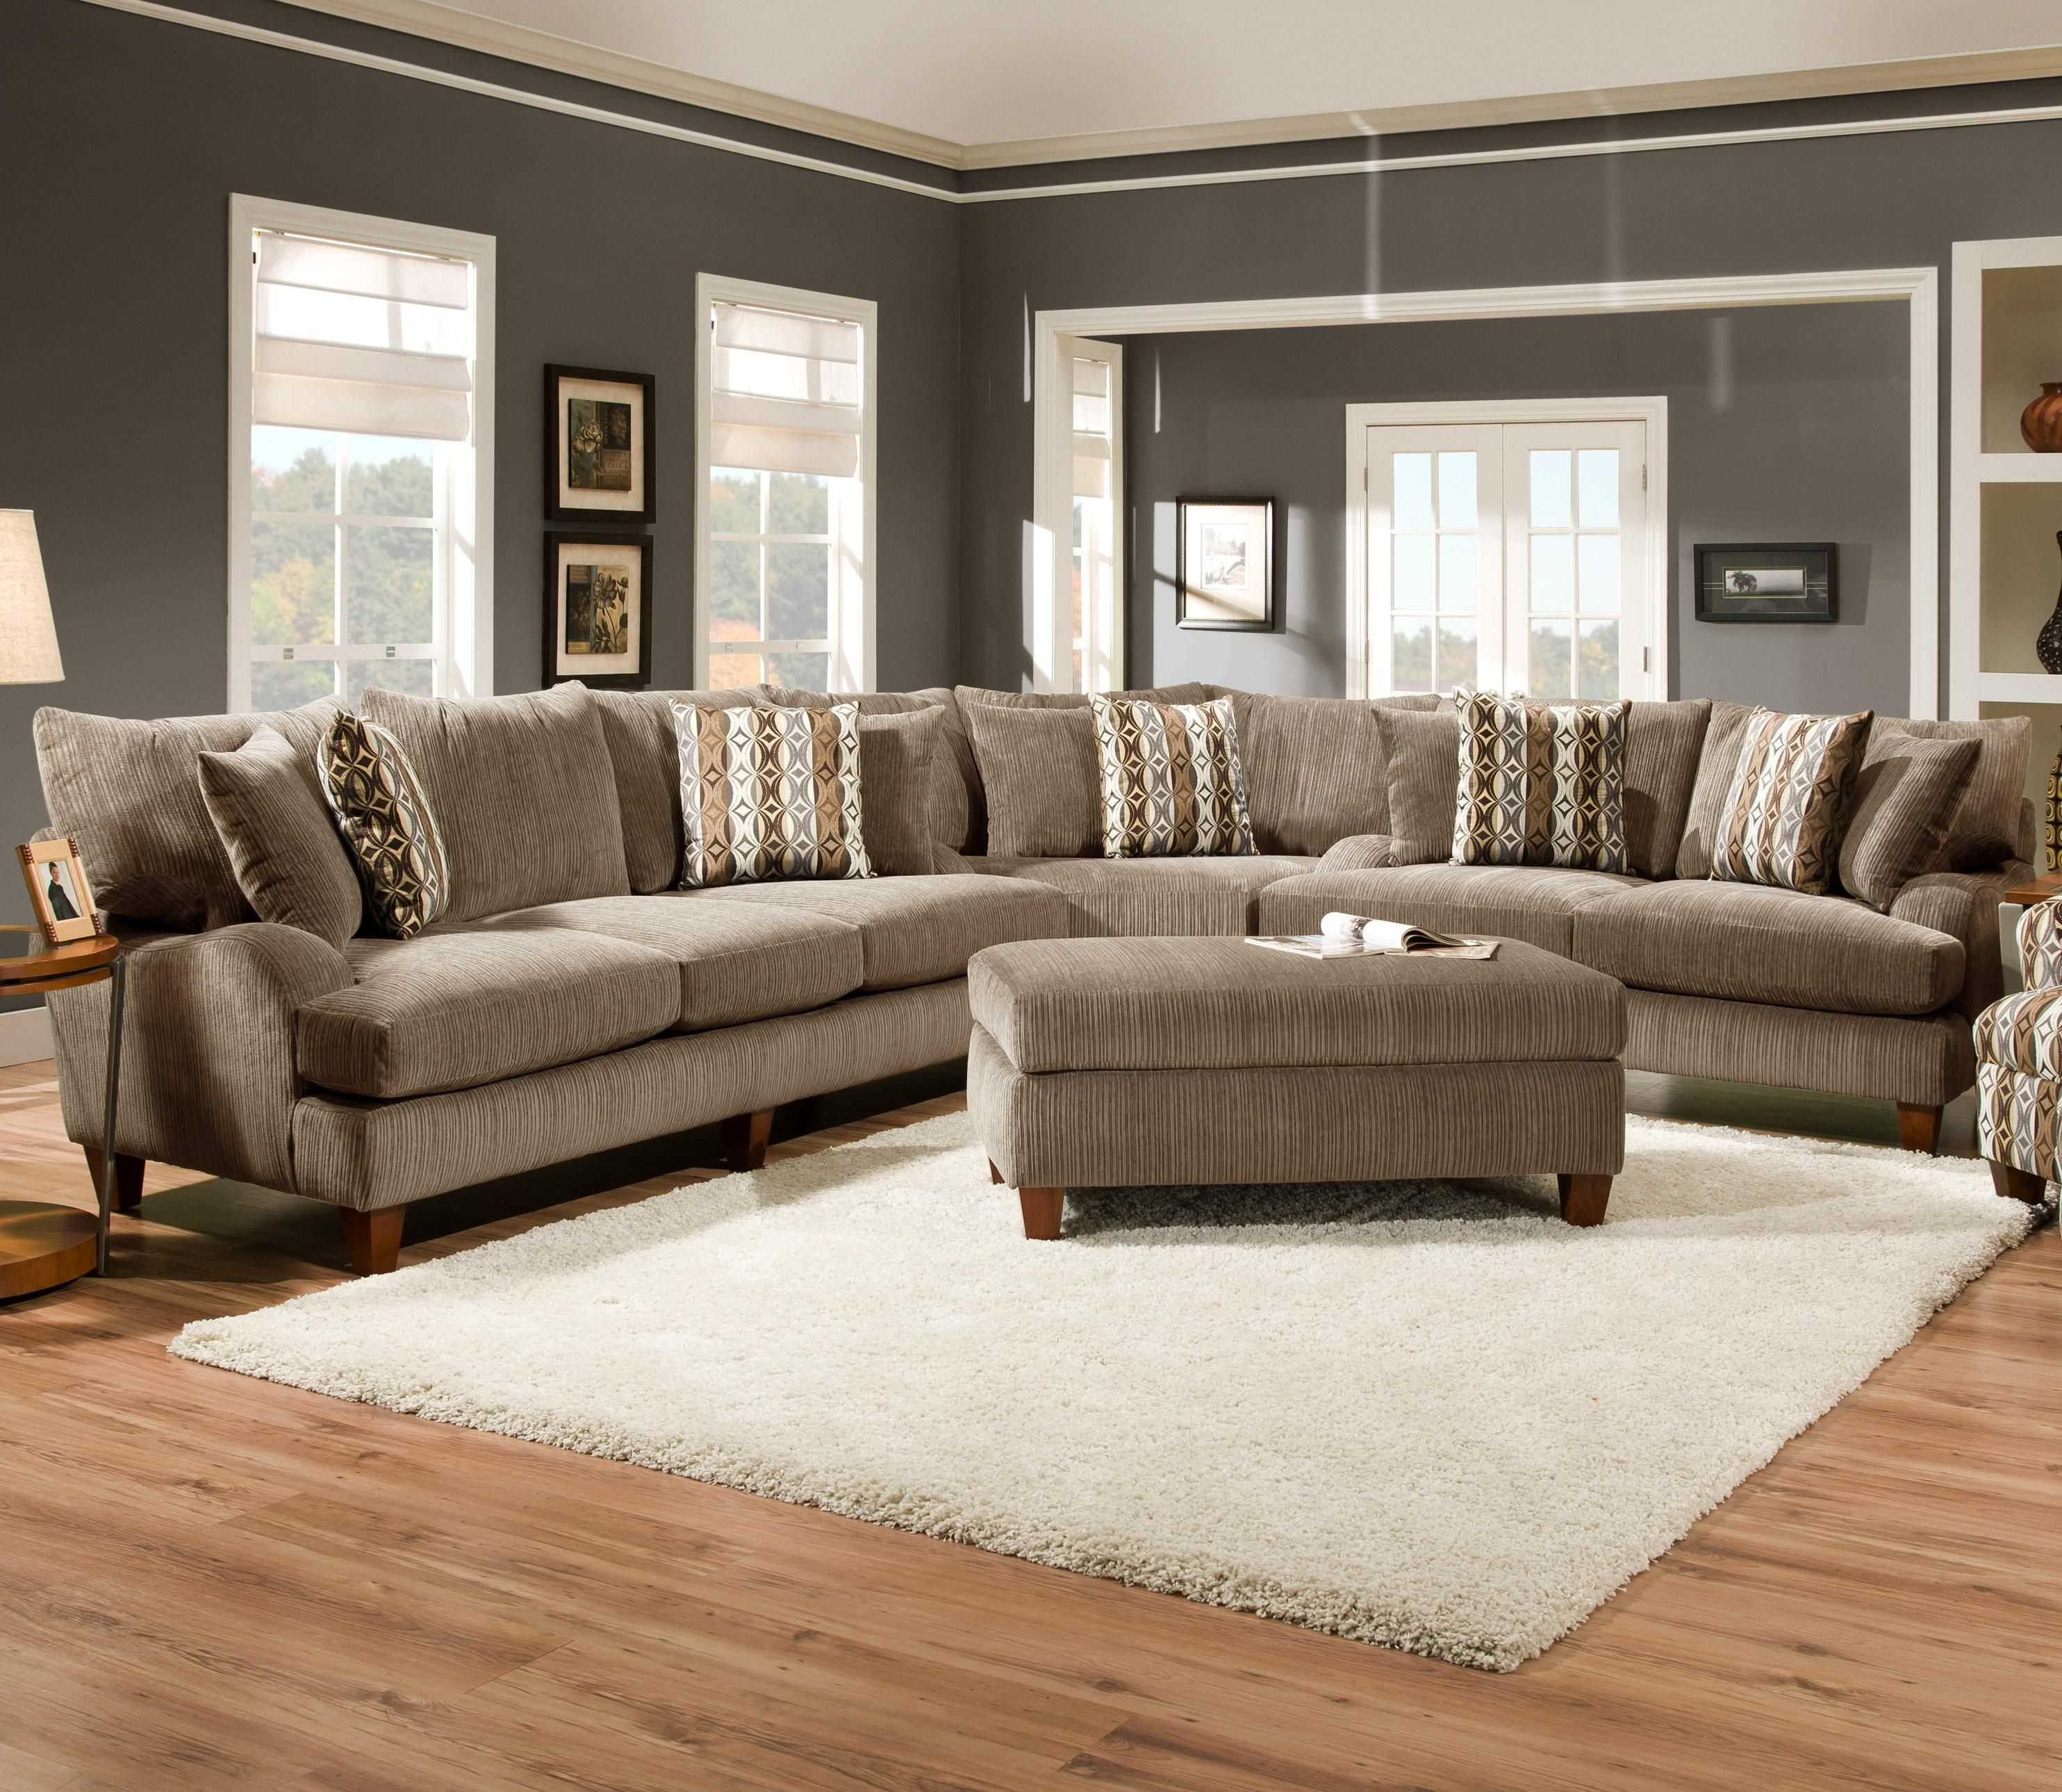 17BO Boggle Platinum Sectional by Corinthian home decor